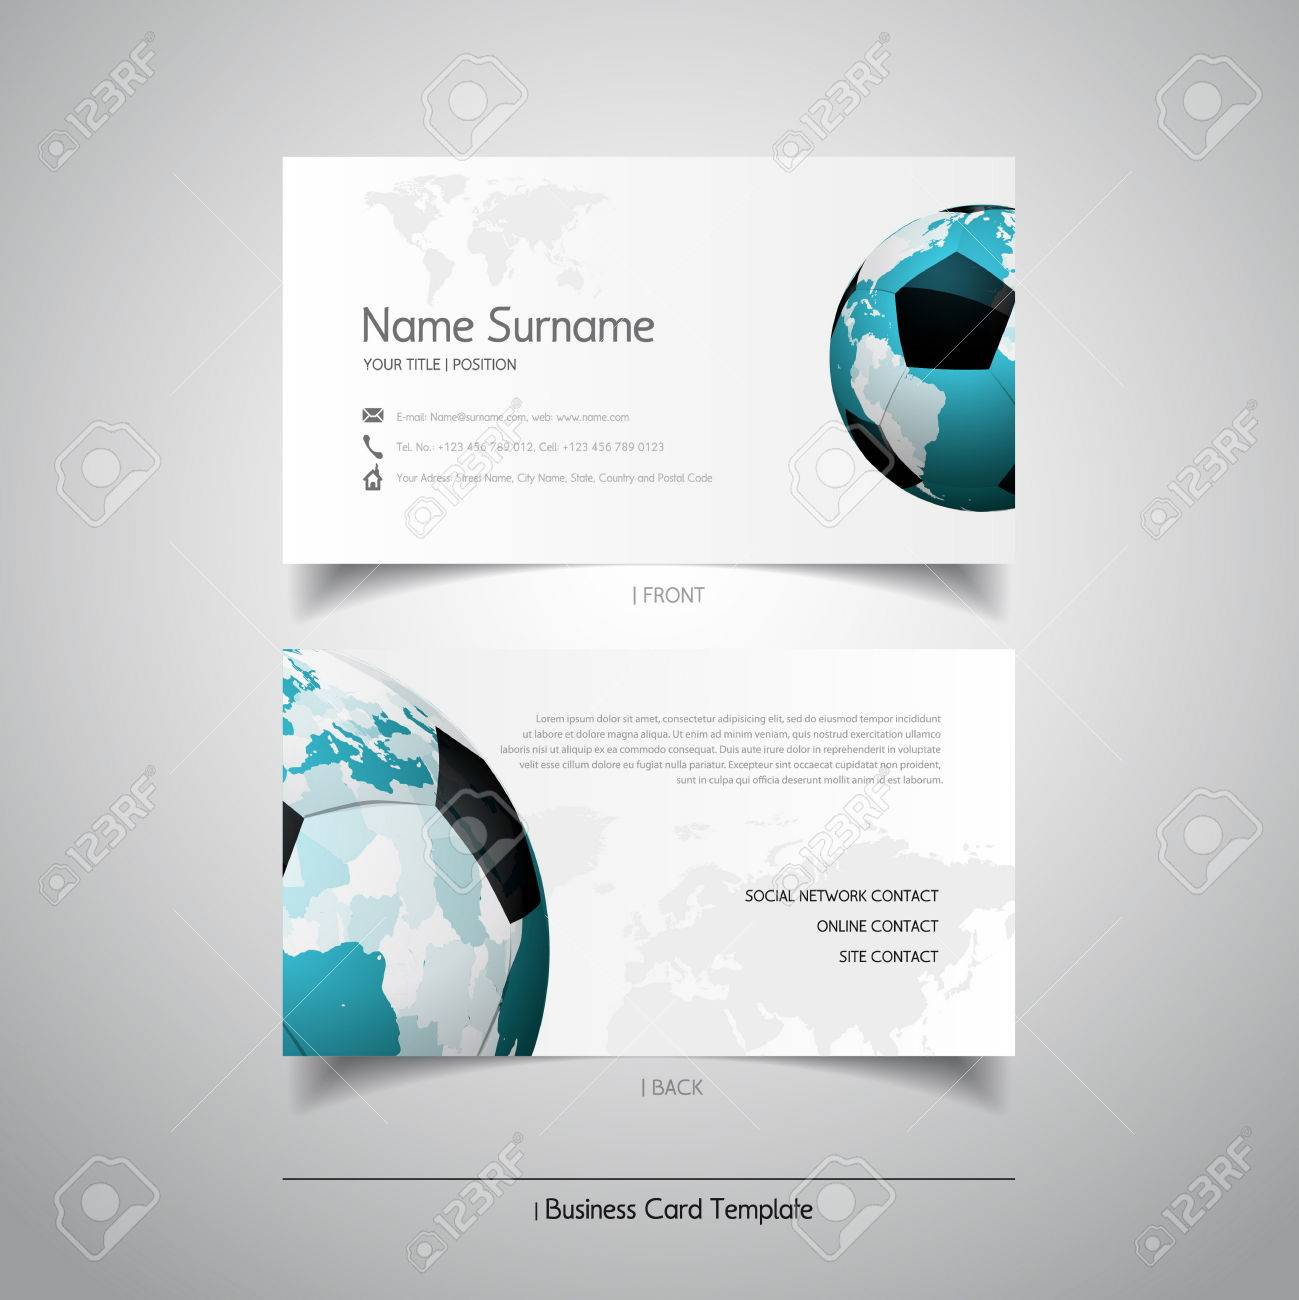 Soccer business cards images free business cards modern simple light business card template with soccer ball modern simple light business card template with magicingreecefo Gallery